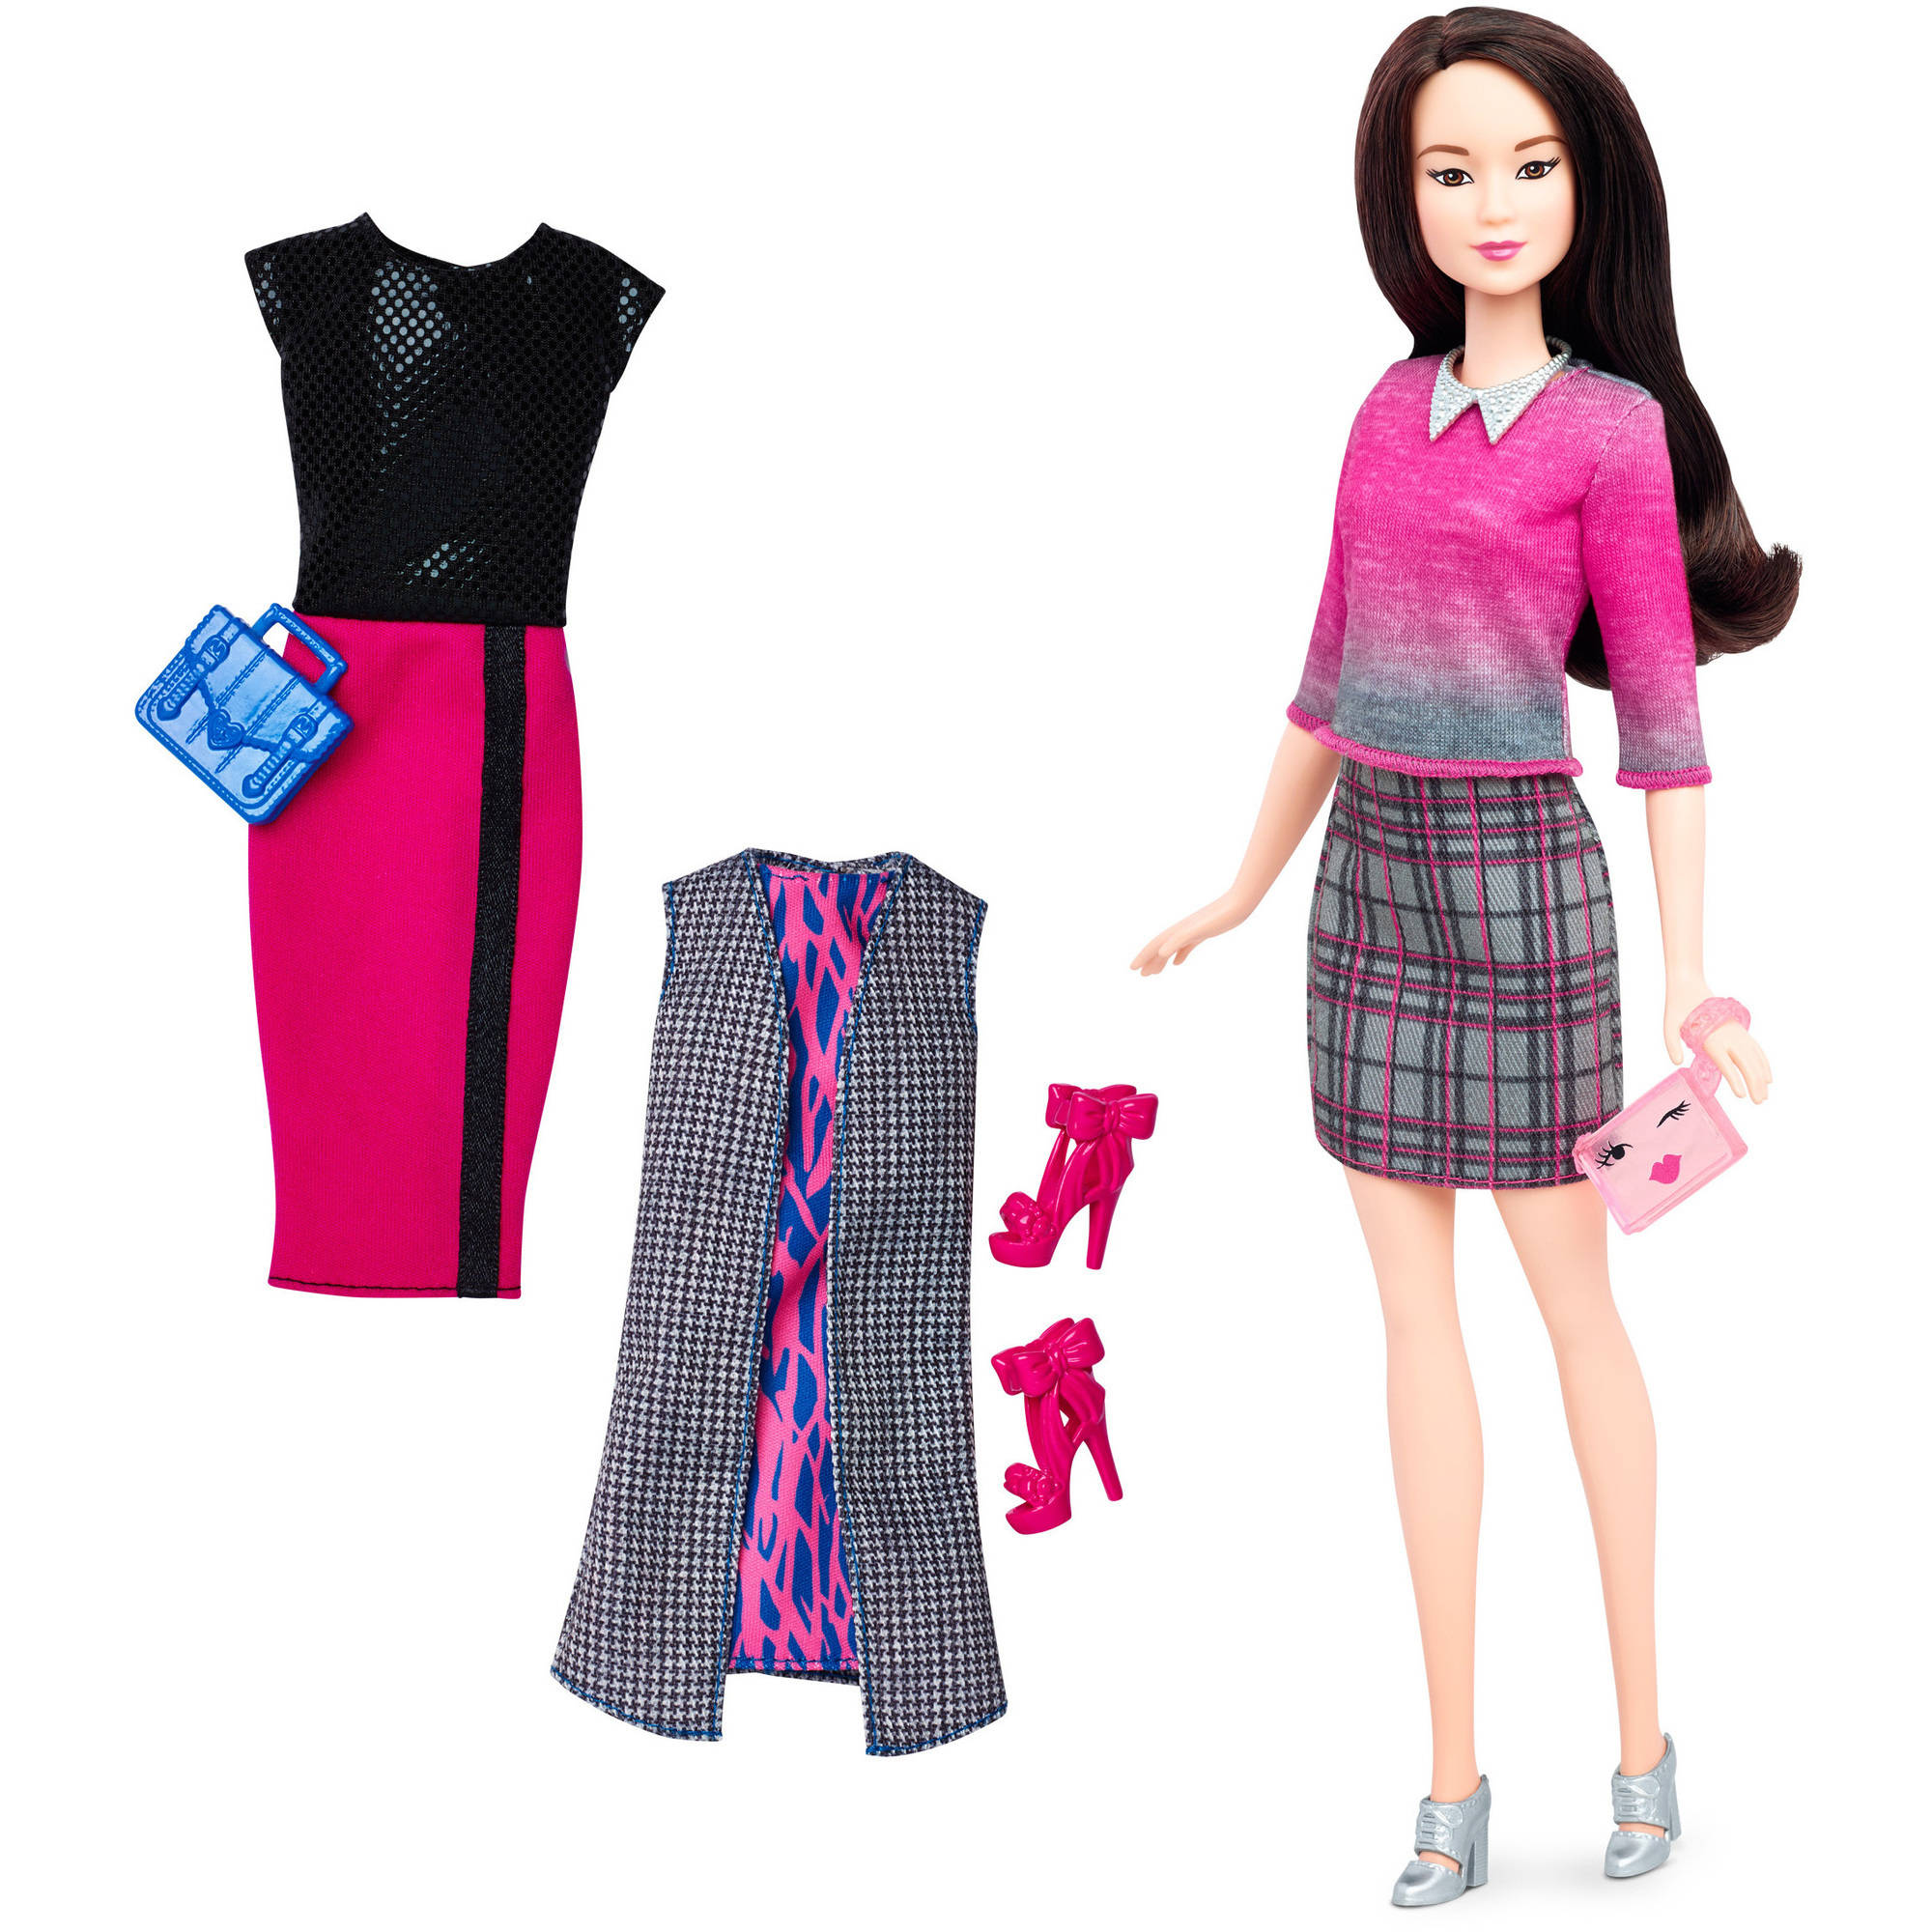 Barbie Chic with a Wink Fashionista Gift Set